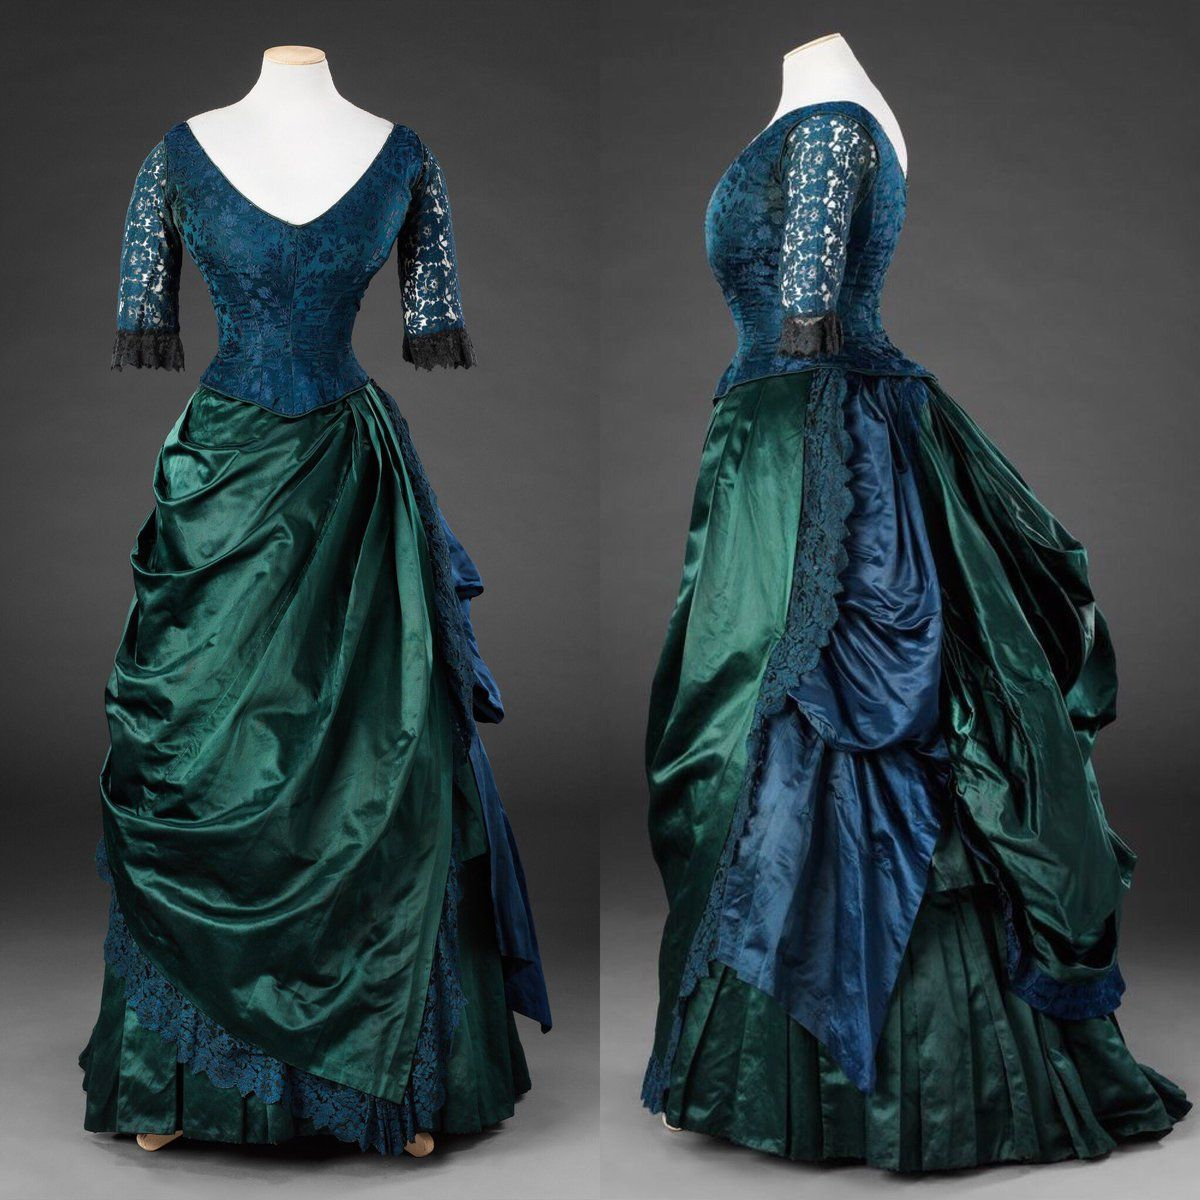 Mid 1880s Late Victorian Fashion Historical Dresses Vintage Gowns Victorian Clothing [ 1200 x 1200 Pixel ]